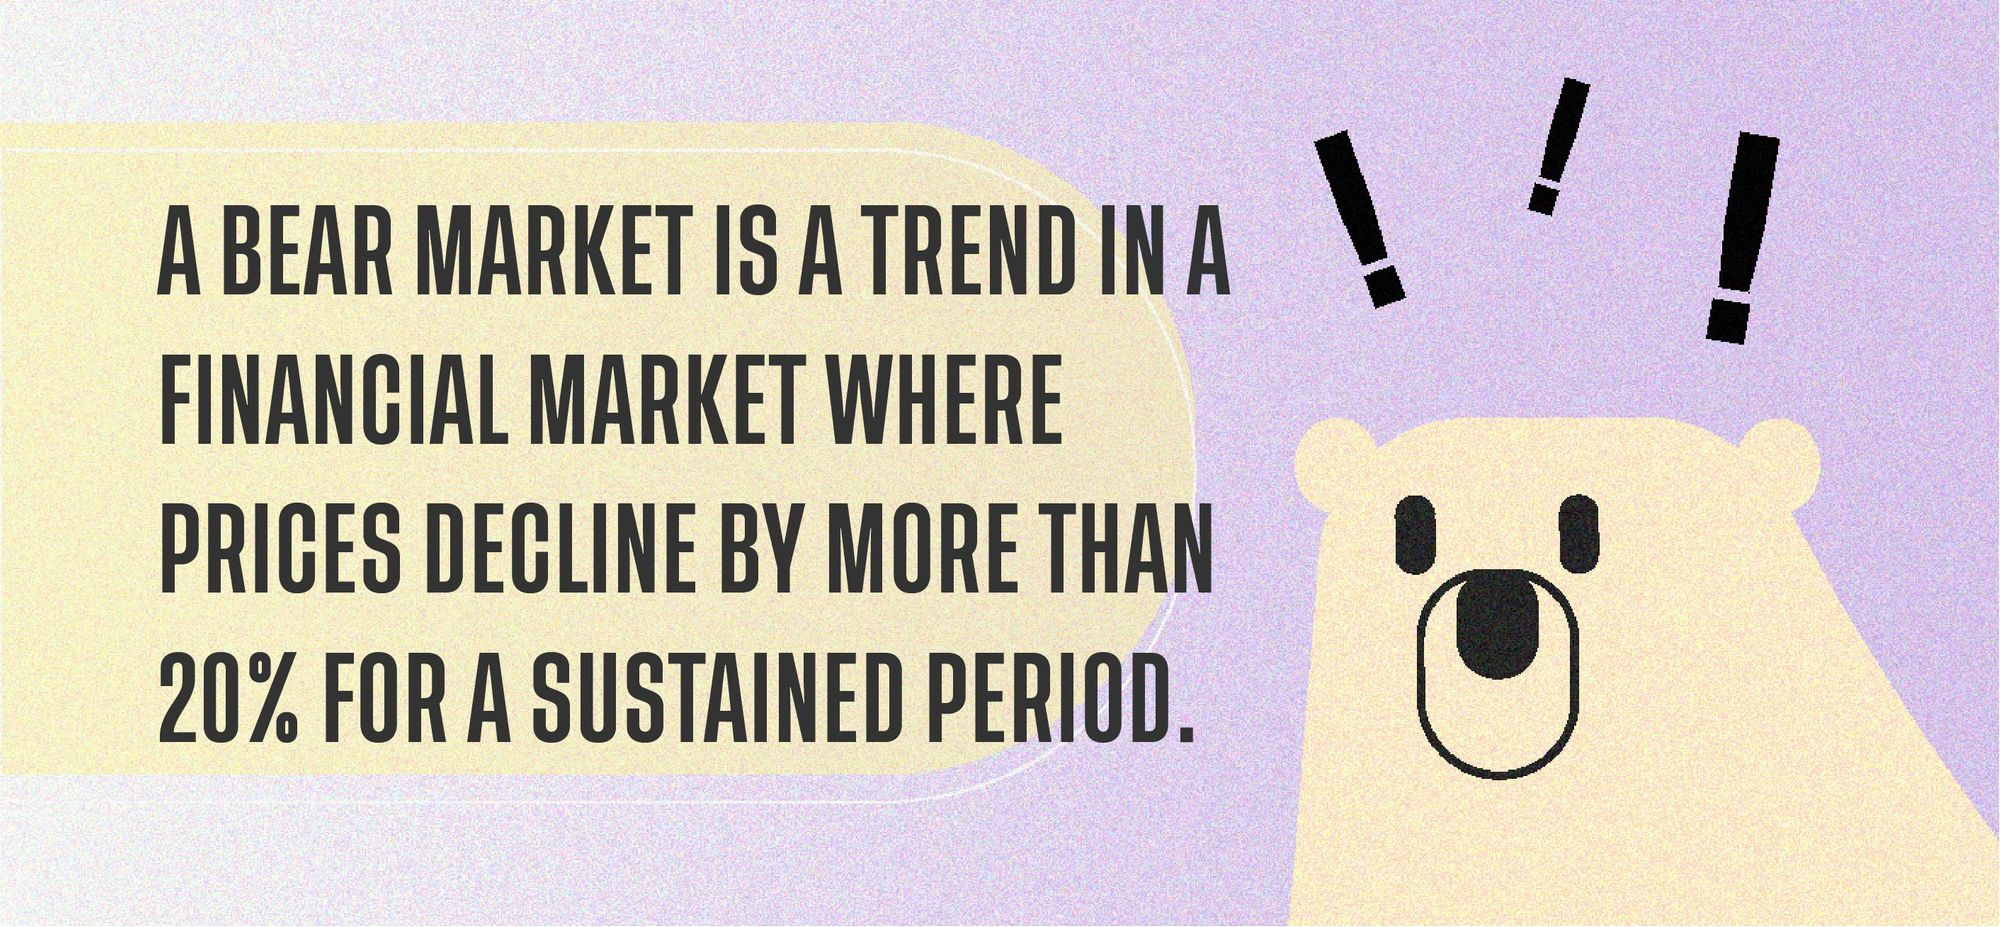 A bear market is a trend in a financial market where prices decline by more than 20% for a sustained period